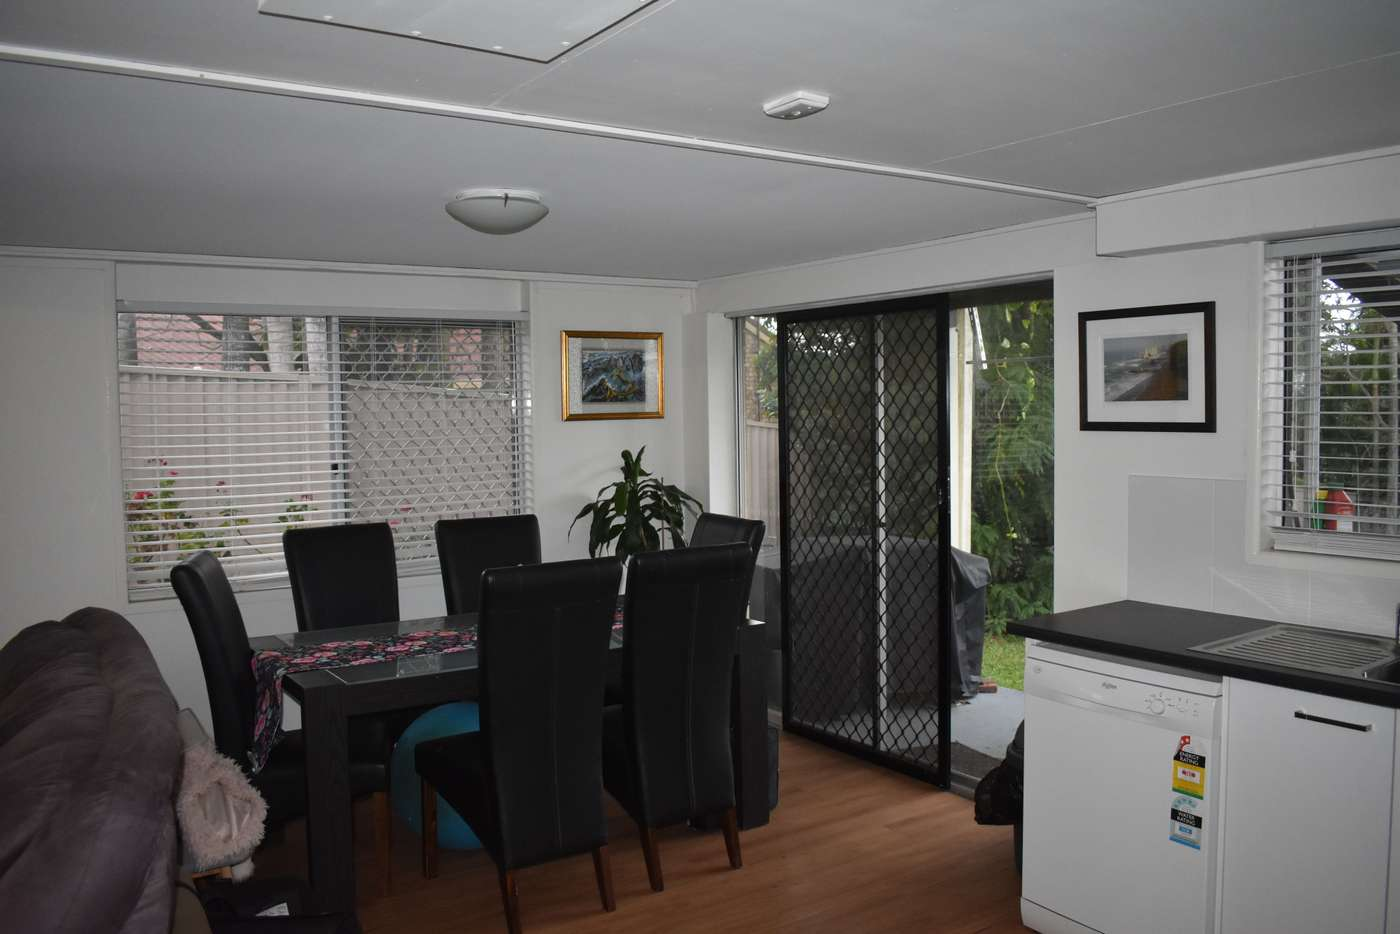 Seventh view of Homely house listing, 56 Elysium Road, Rochedale South QLD 4123